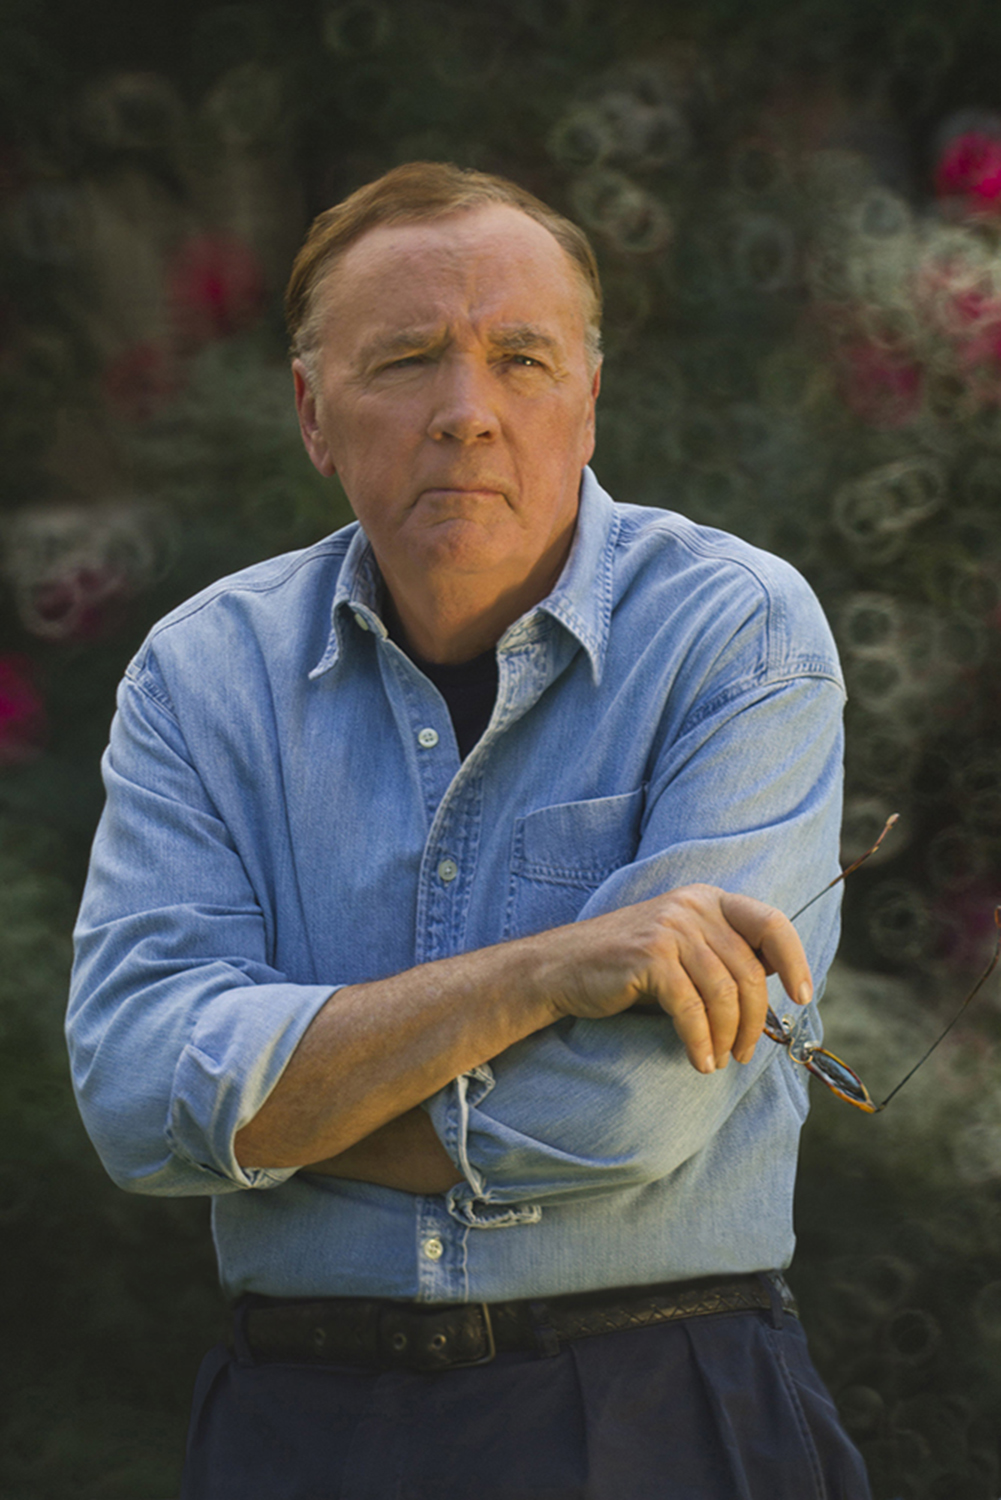 James Patterson is the author of the popular Alex Cross mystery thriller novel series.